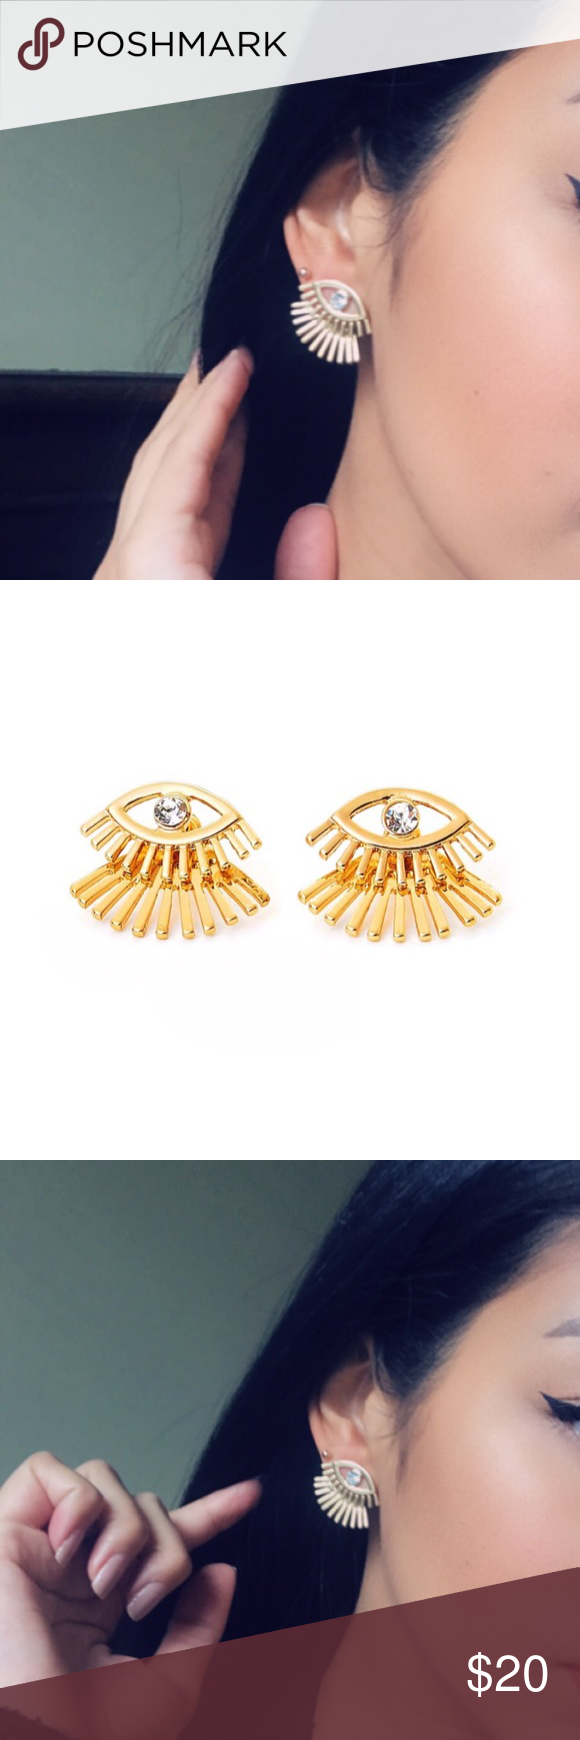 97eb1571b Eye & Eyelash double back stud earrings Brand new Stud earrings Double back stud  earrings Color is gold with clear crystal gemstone Fashion earrings ...